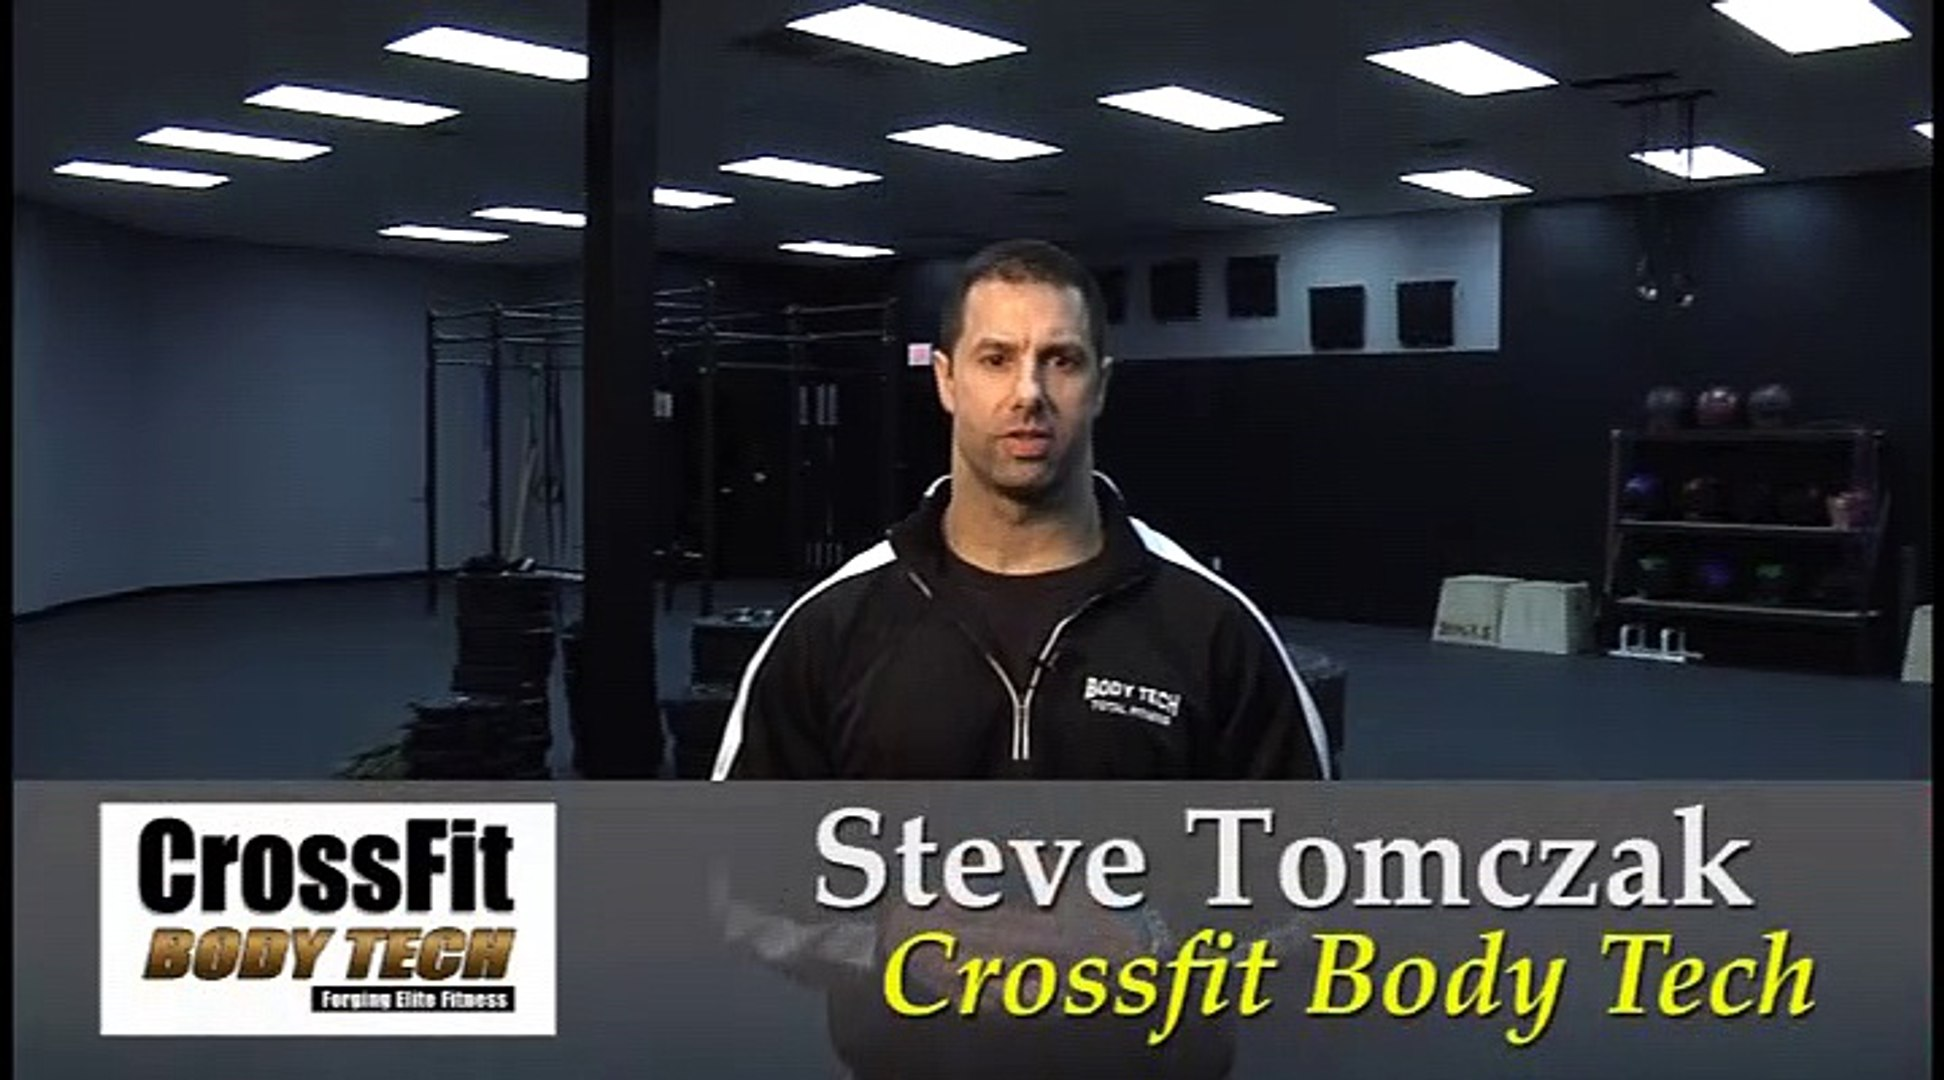 CrossFit Body Tech Elements - CrossFit Body Tech in Frankfort IL 708 478-5054